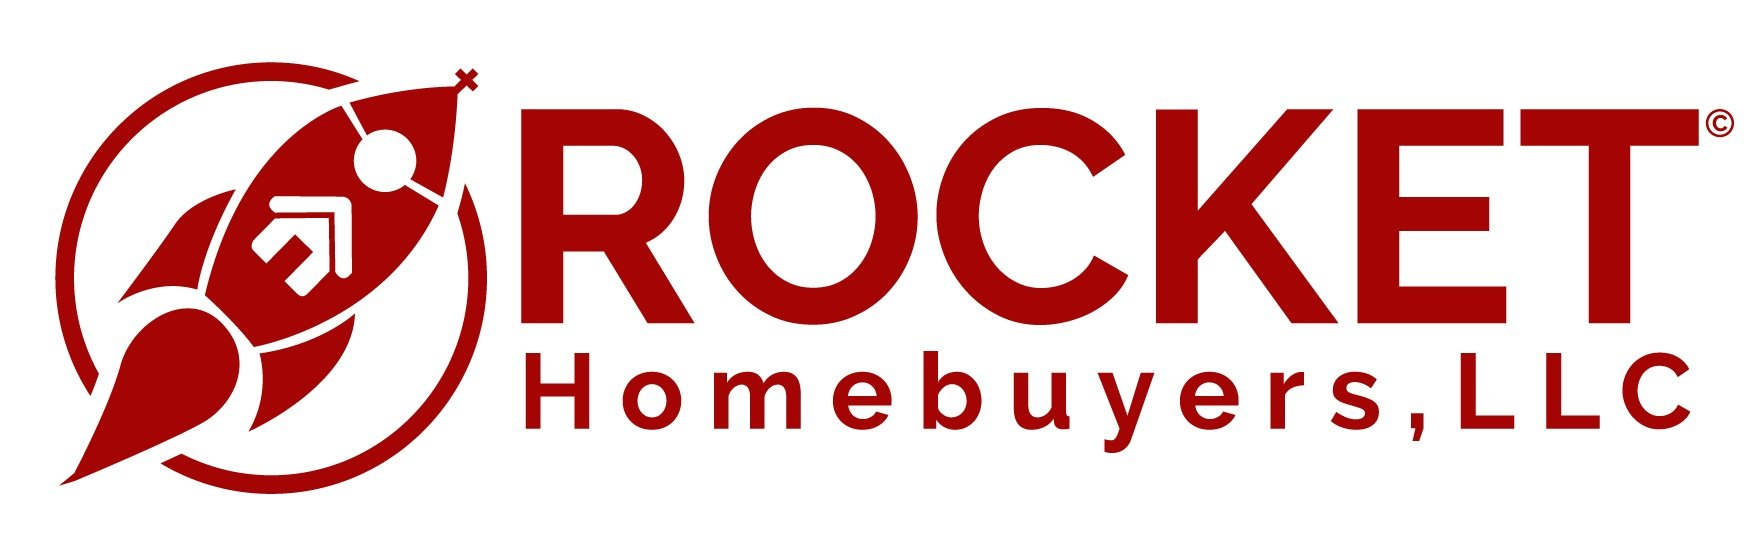 Rocket Homebuyers, LLC logo